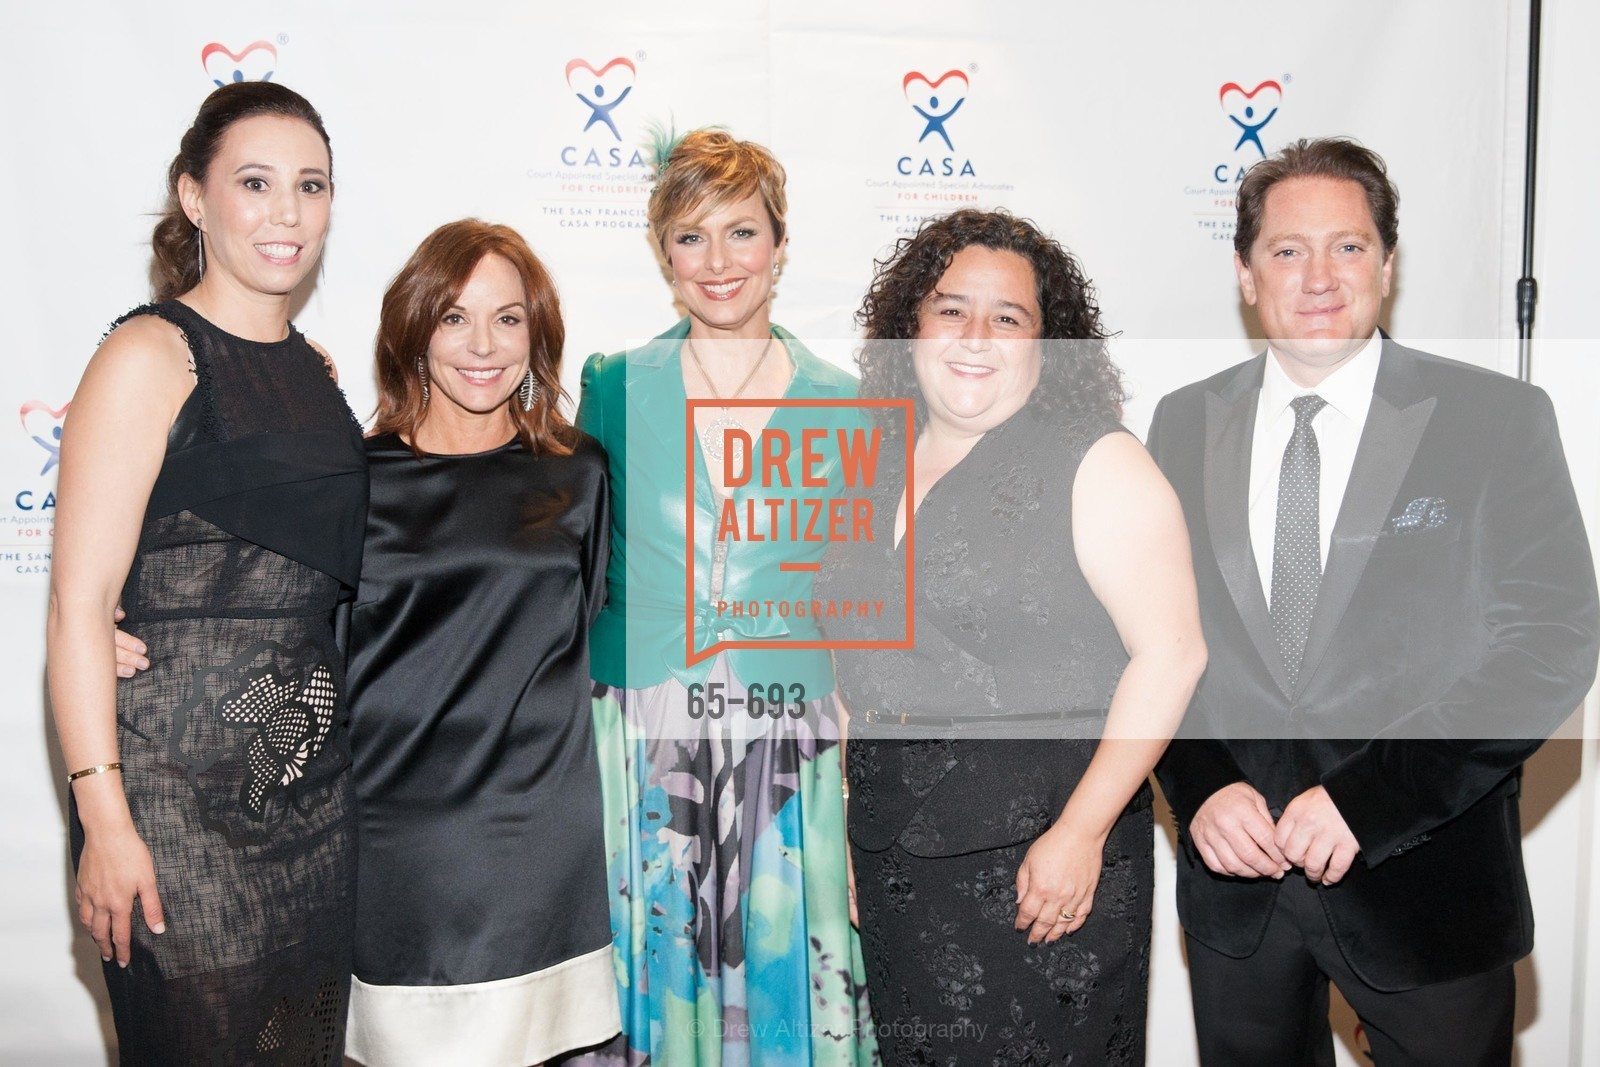 Allison Eisenhardt, Amanda Clarke, Melora Hardin, Renee Espinoza, Liam Mayclem, SFCASA'S Fostering Change Gala:  Room Without A Roof, US, May 1st, 2015,Drew Altizer, Drew Altizer Photography, full-service agency, private events, San Francisco photographer, photographer california